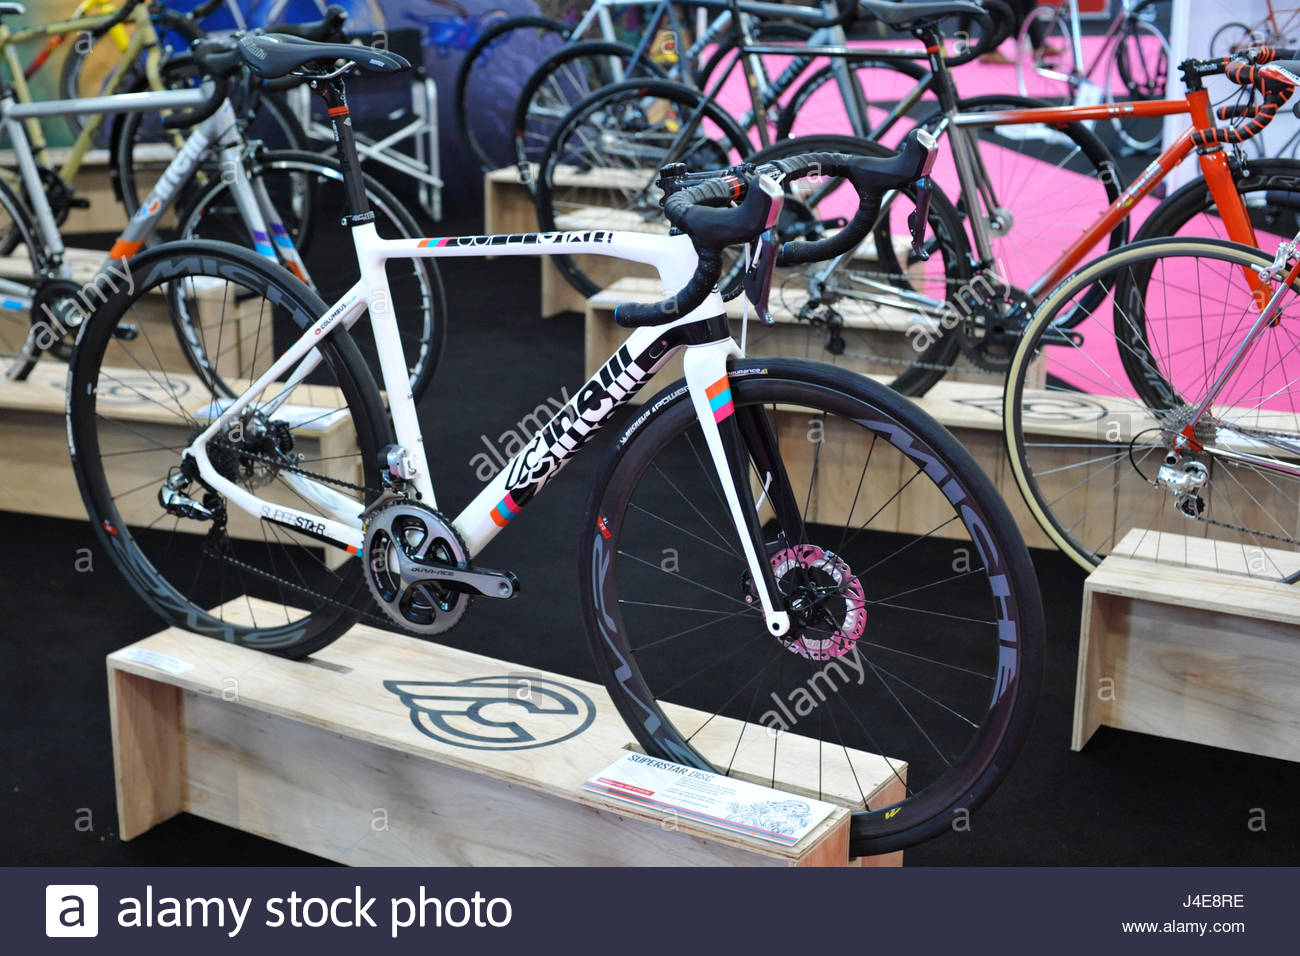 Cinelli Superstar Disc (alamy.com)